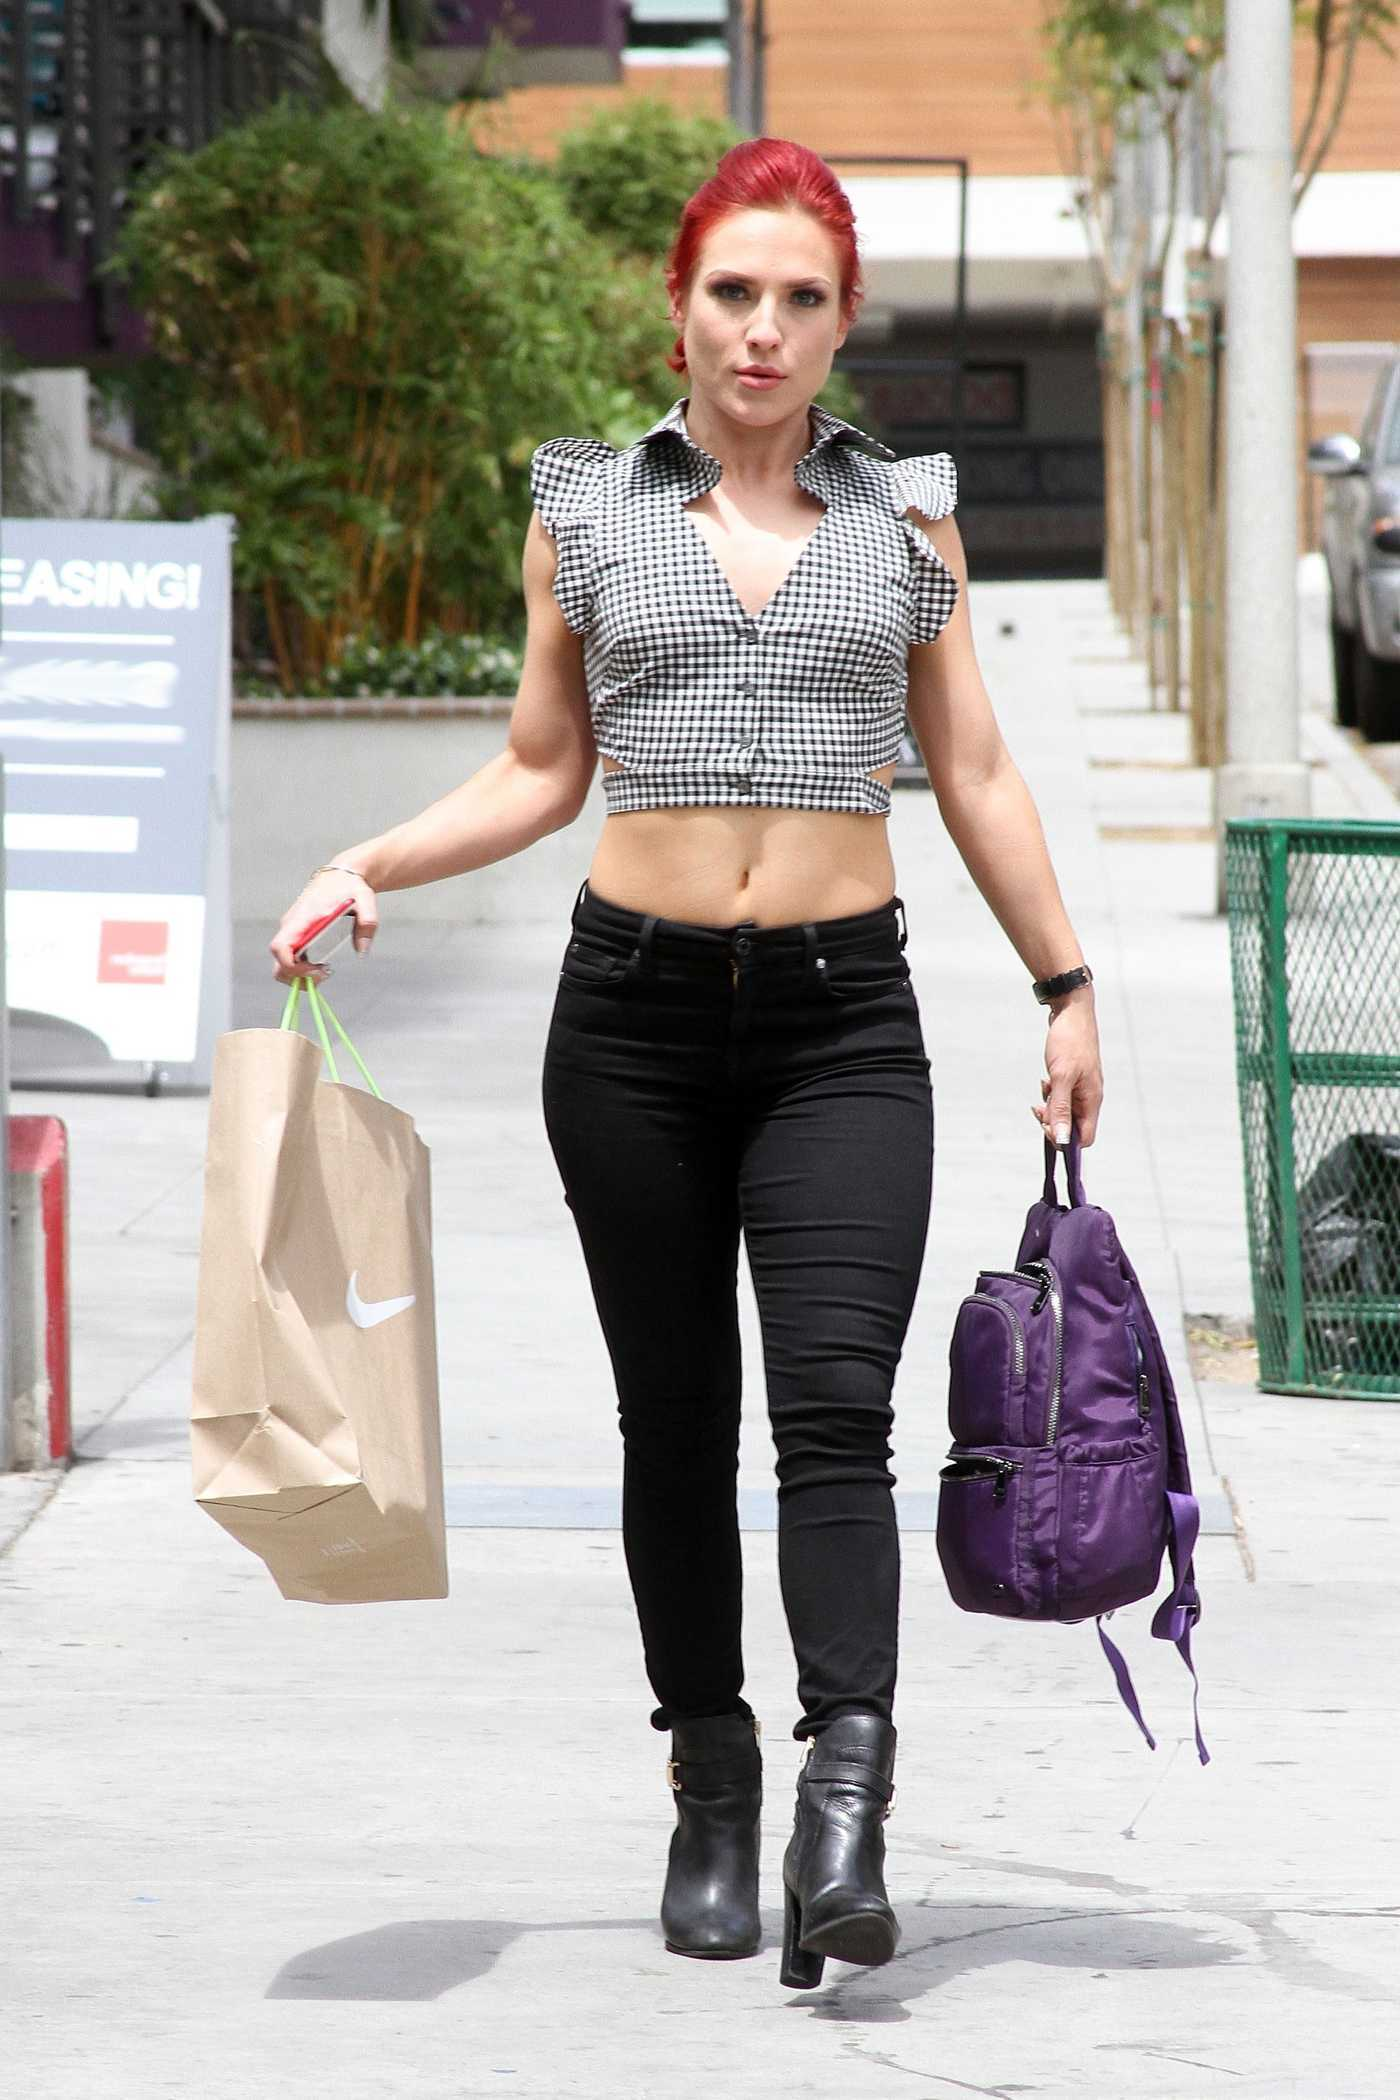 Sharna Burgess Arrives at the Dancing With the Stars Rehearsal Studio in Los Angeles 04/27/2017